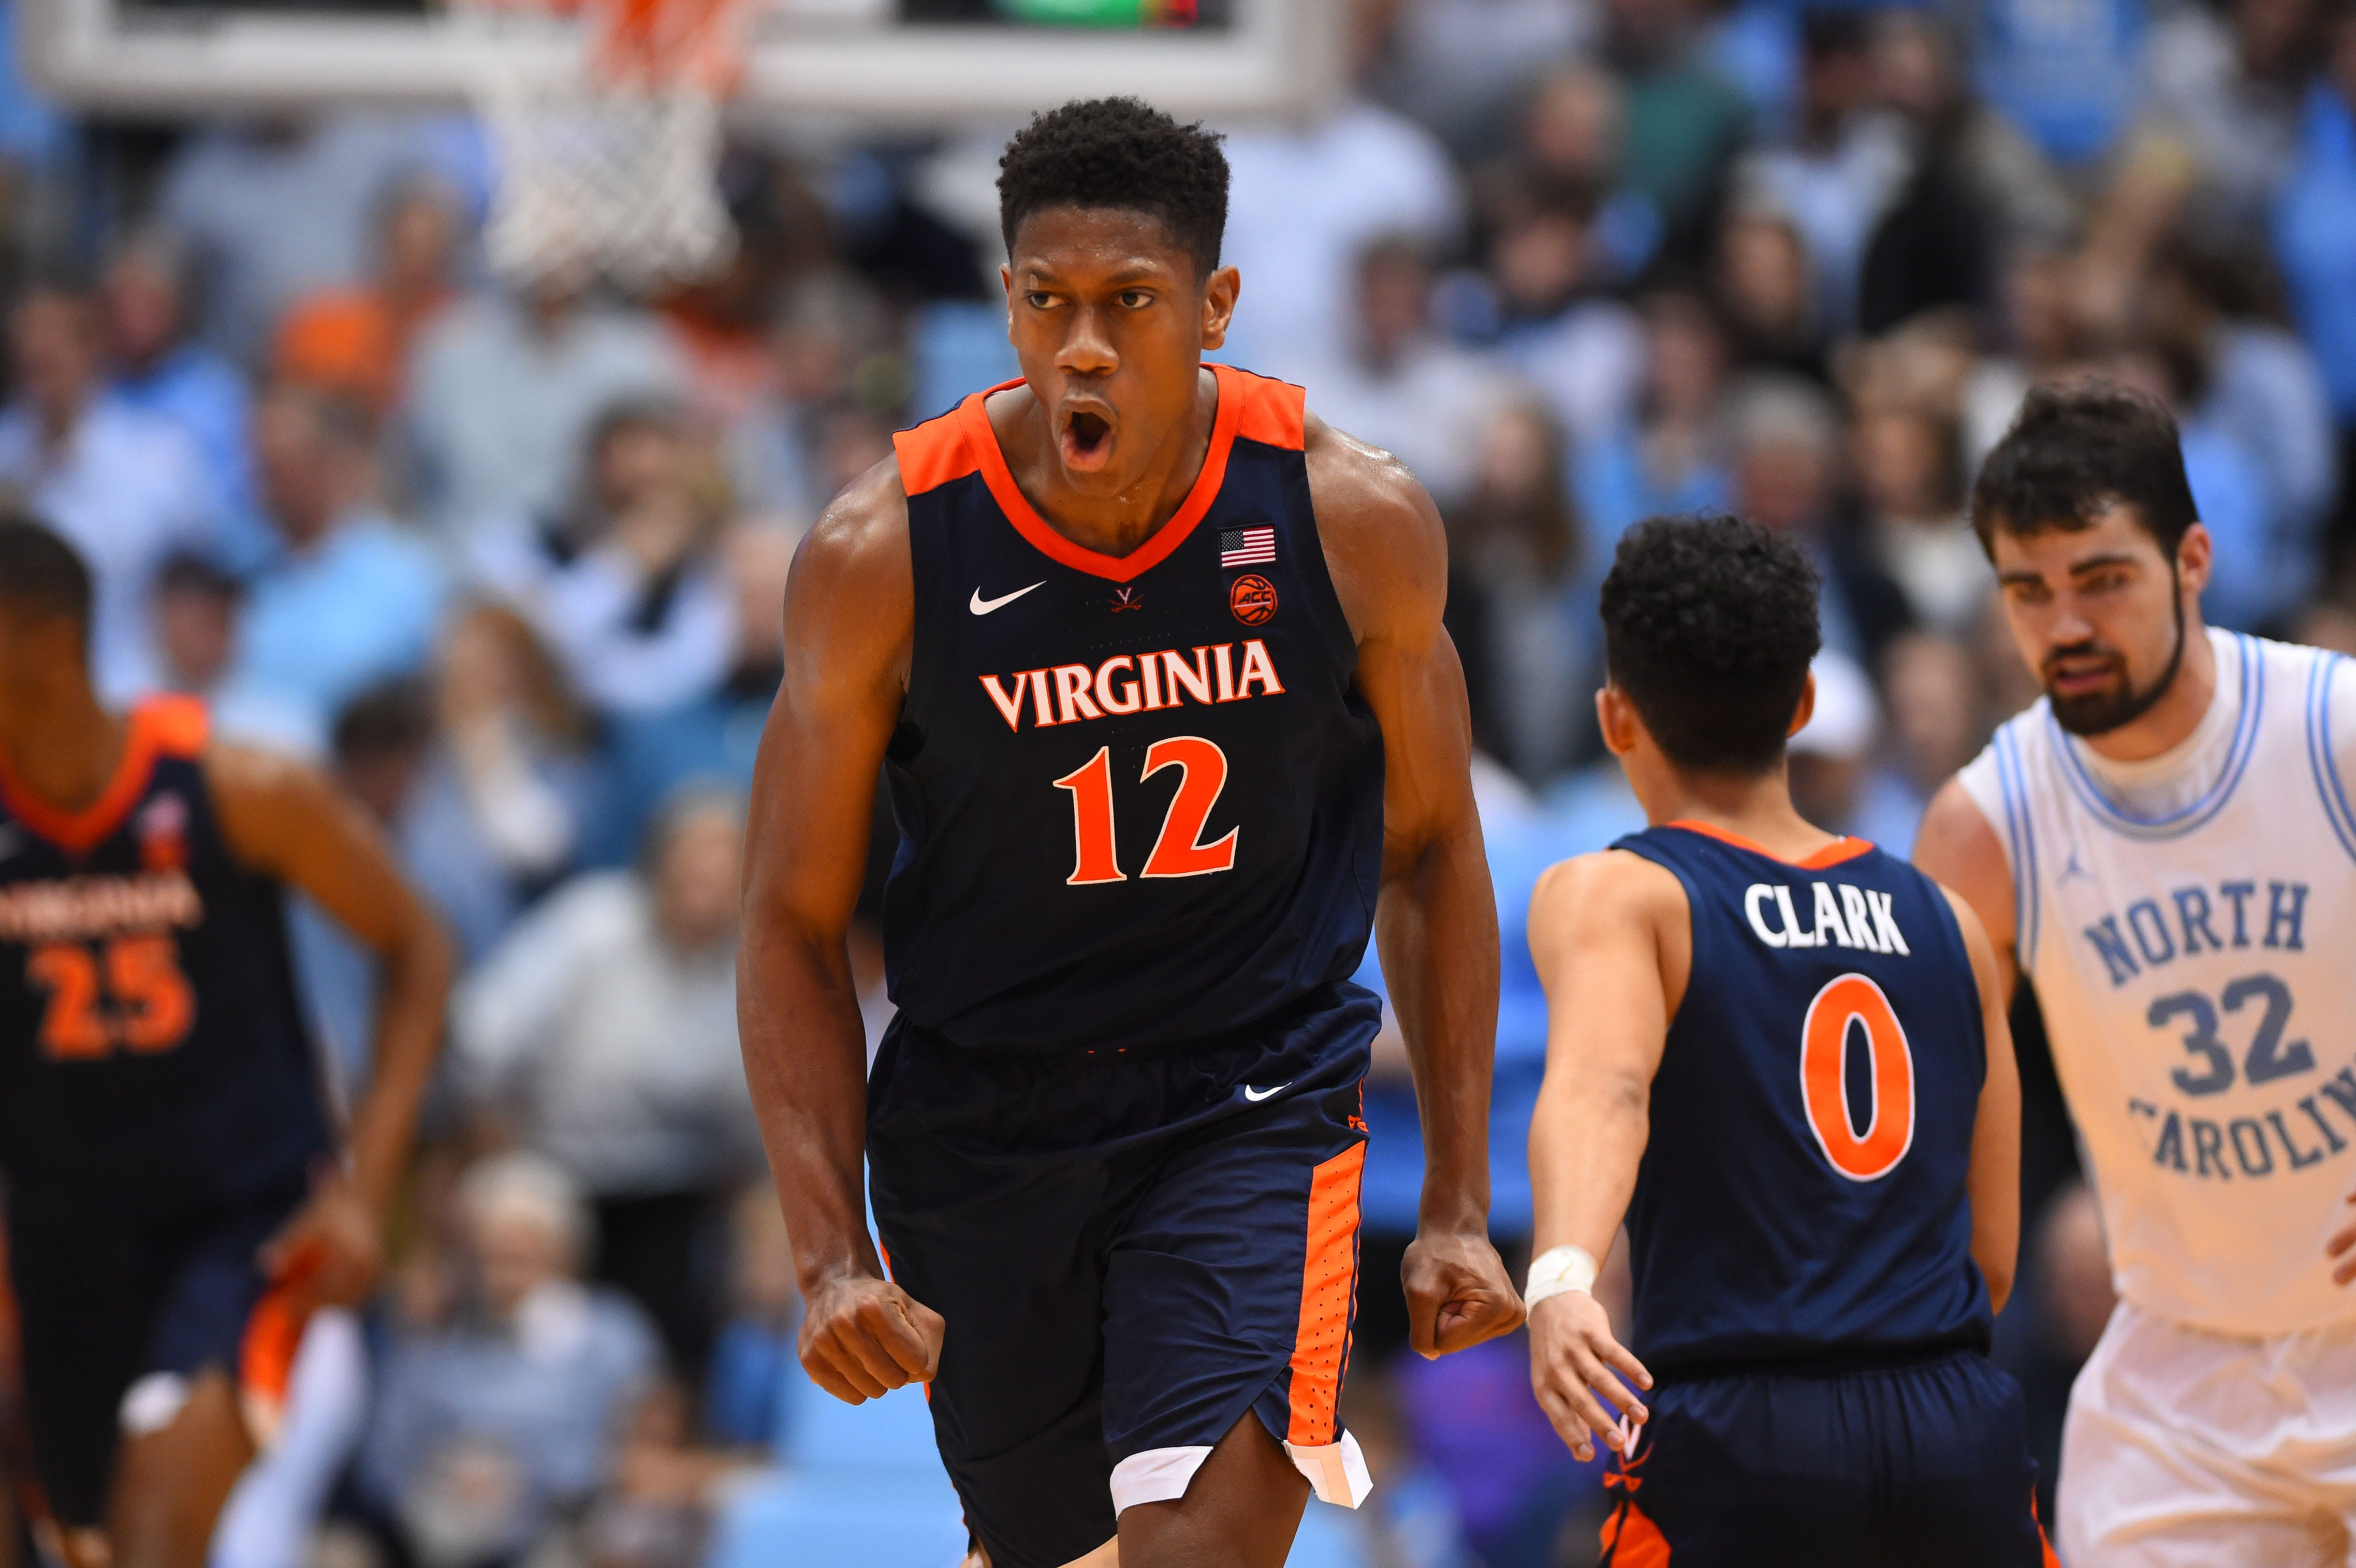 Four reasons why Virginia (yes, Virginia) can win NCAA tournament this March Madness